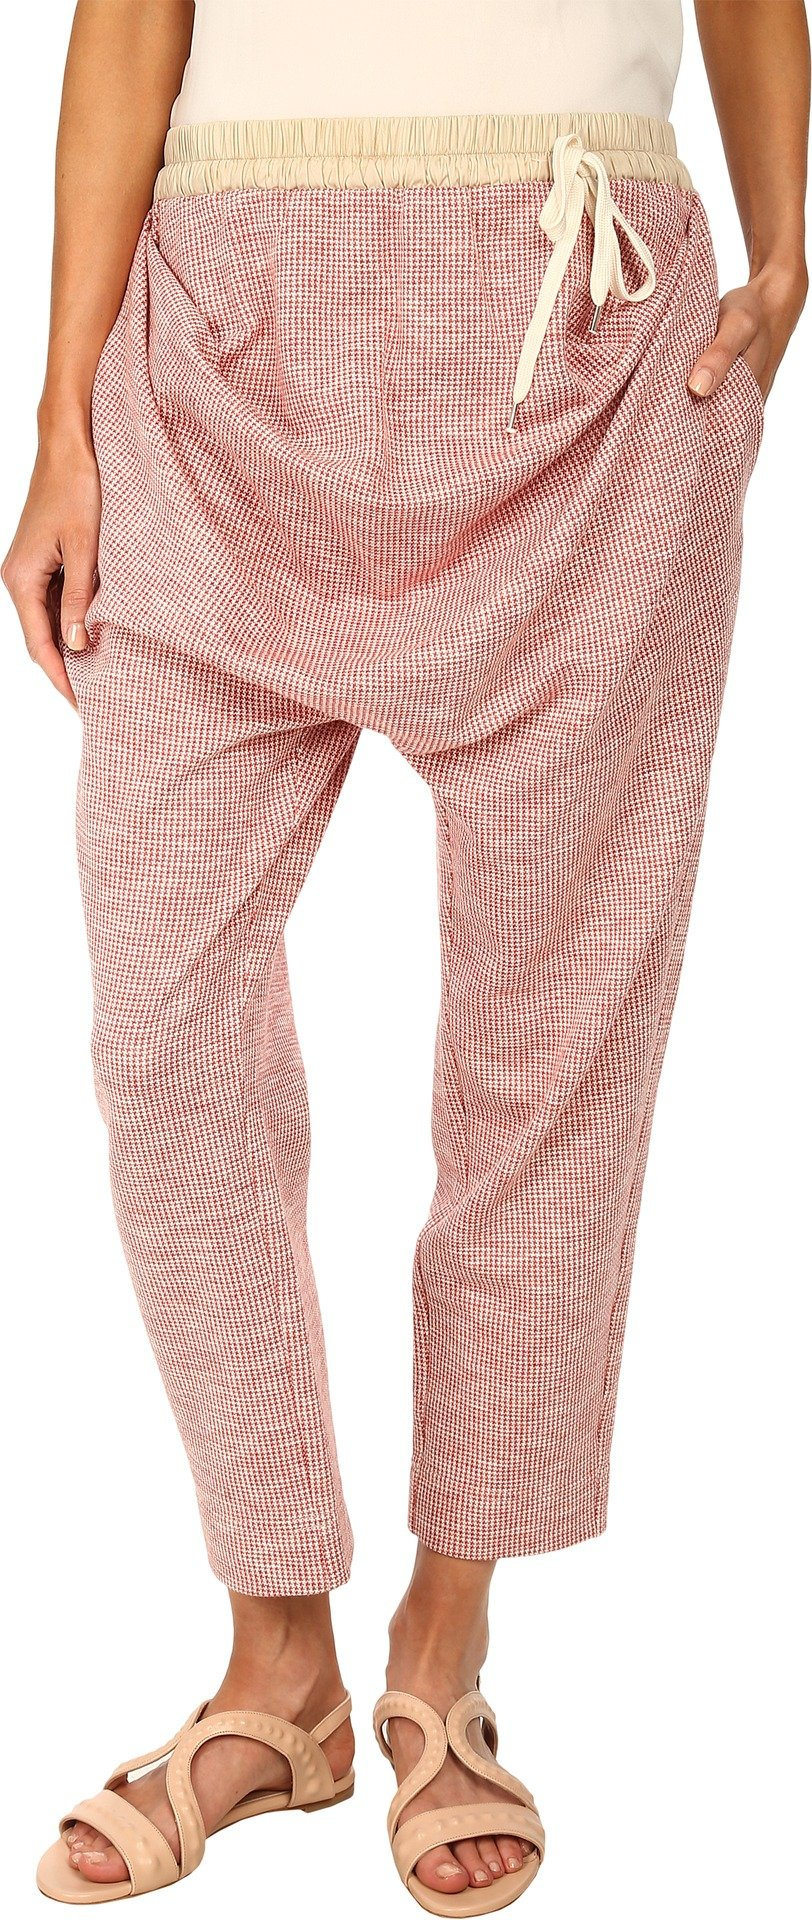 Vivienne Westwood Women's Drape Trousers Red Check MD X 25